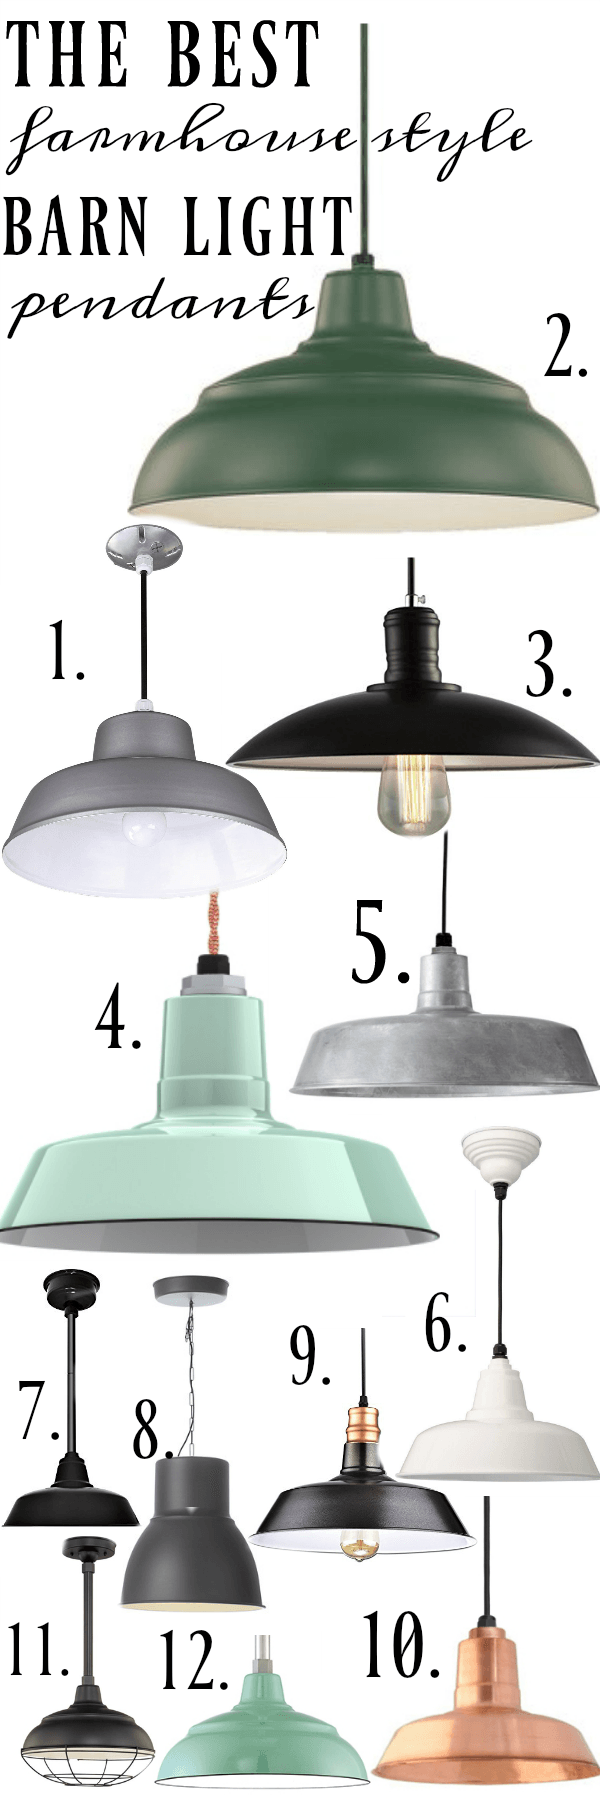 Farmhouse Barn Light Pendants Farmhouse Style Lighting Barn Lighting Barn Light Pendant